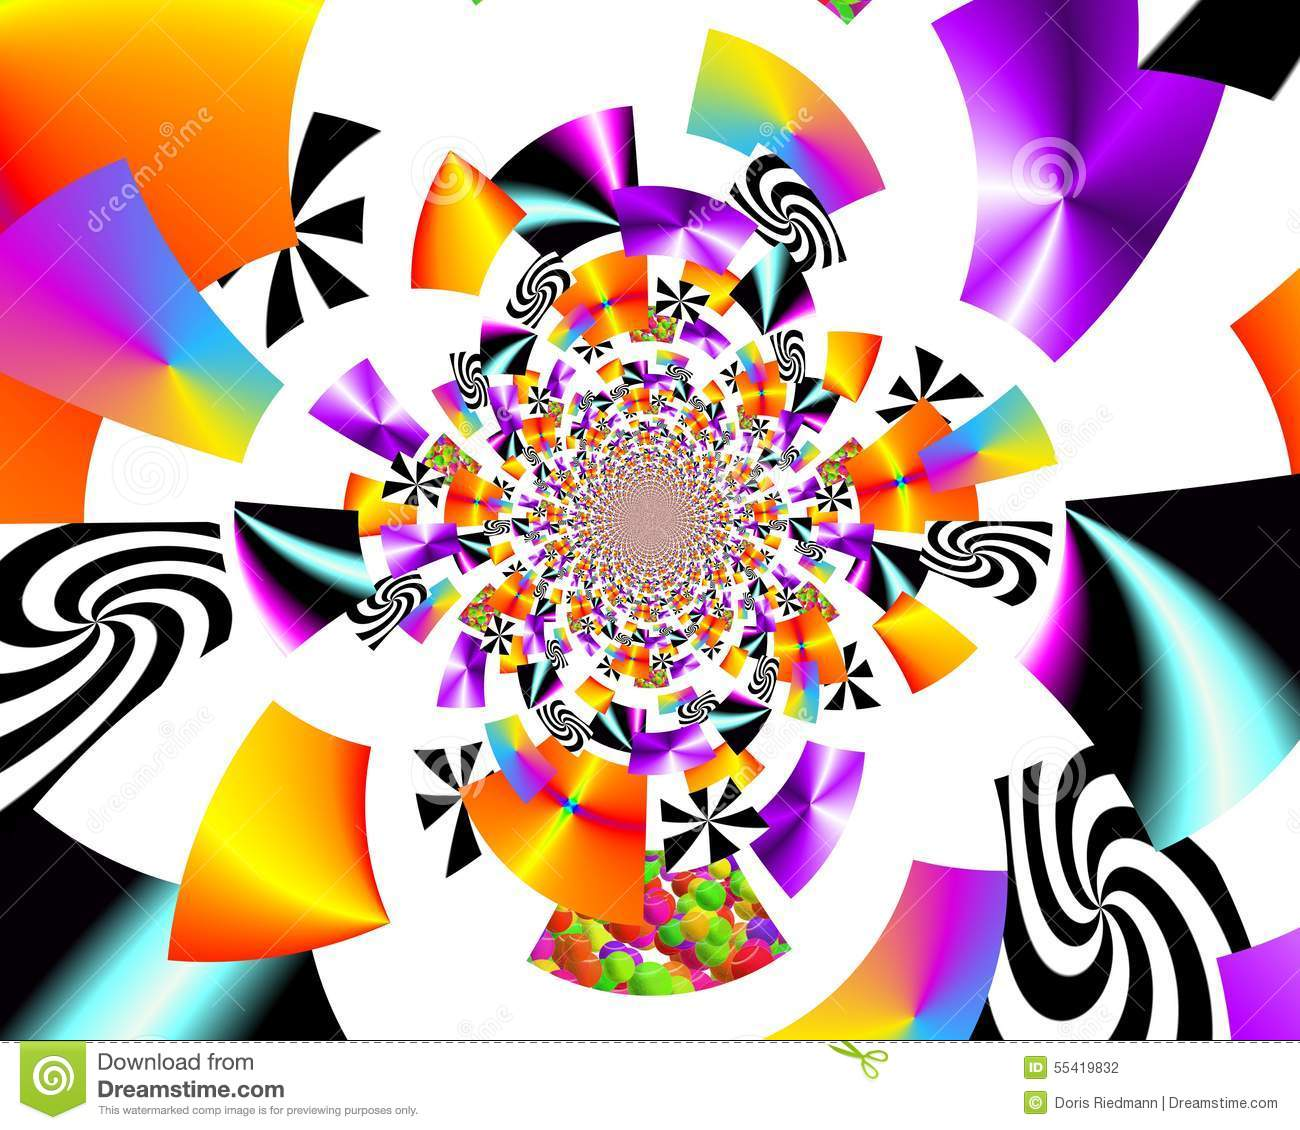 Grafik design art abstract colorful painting pictures new for Grafik design